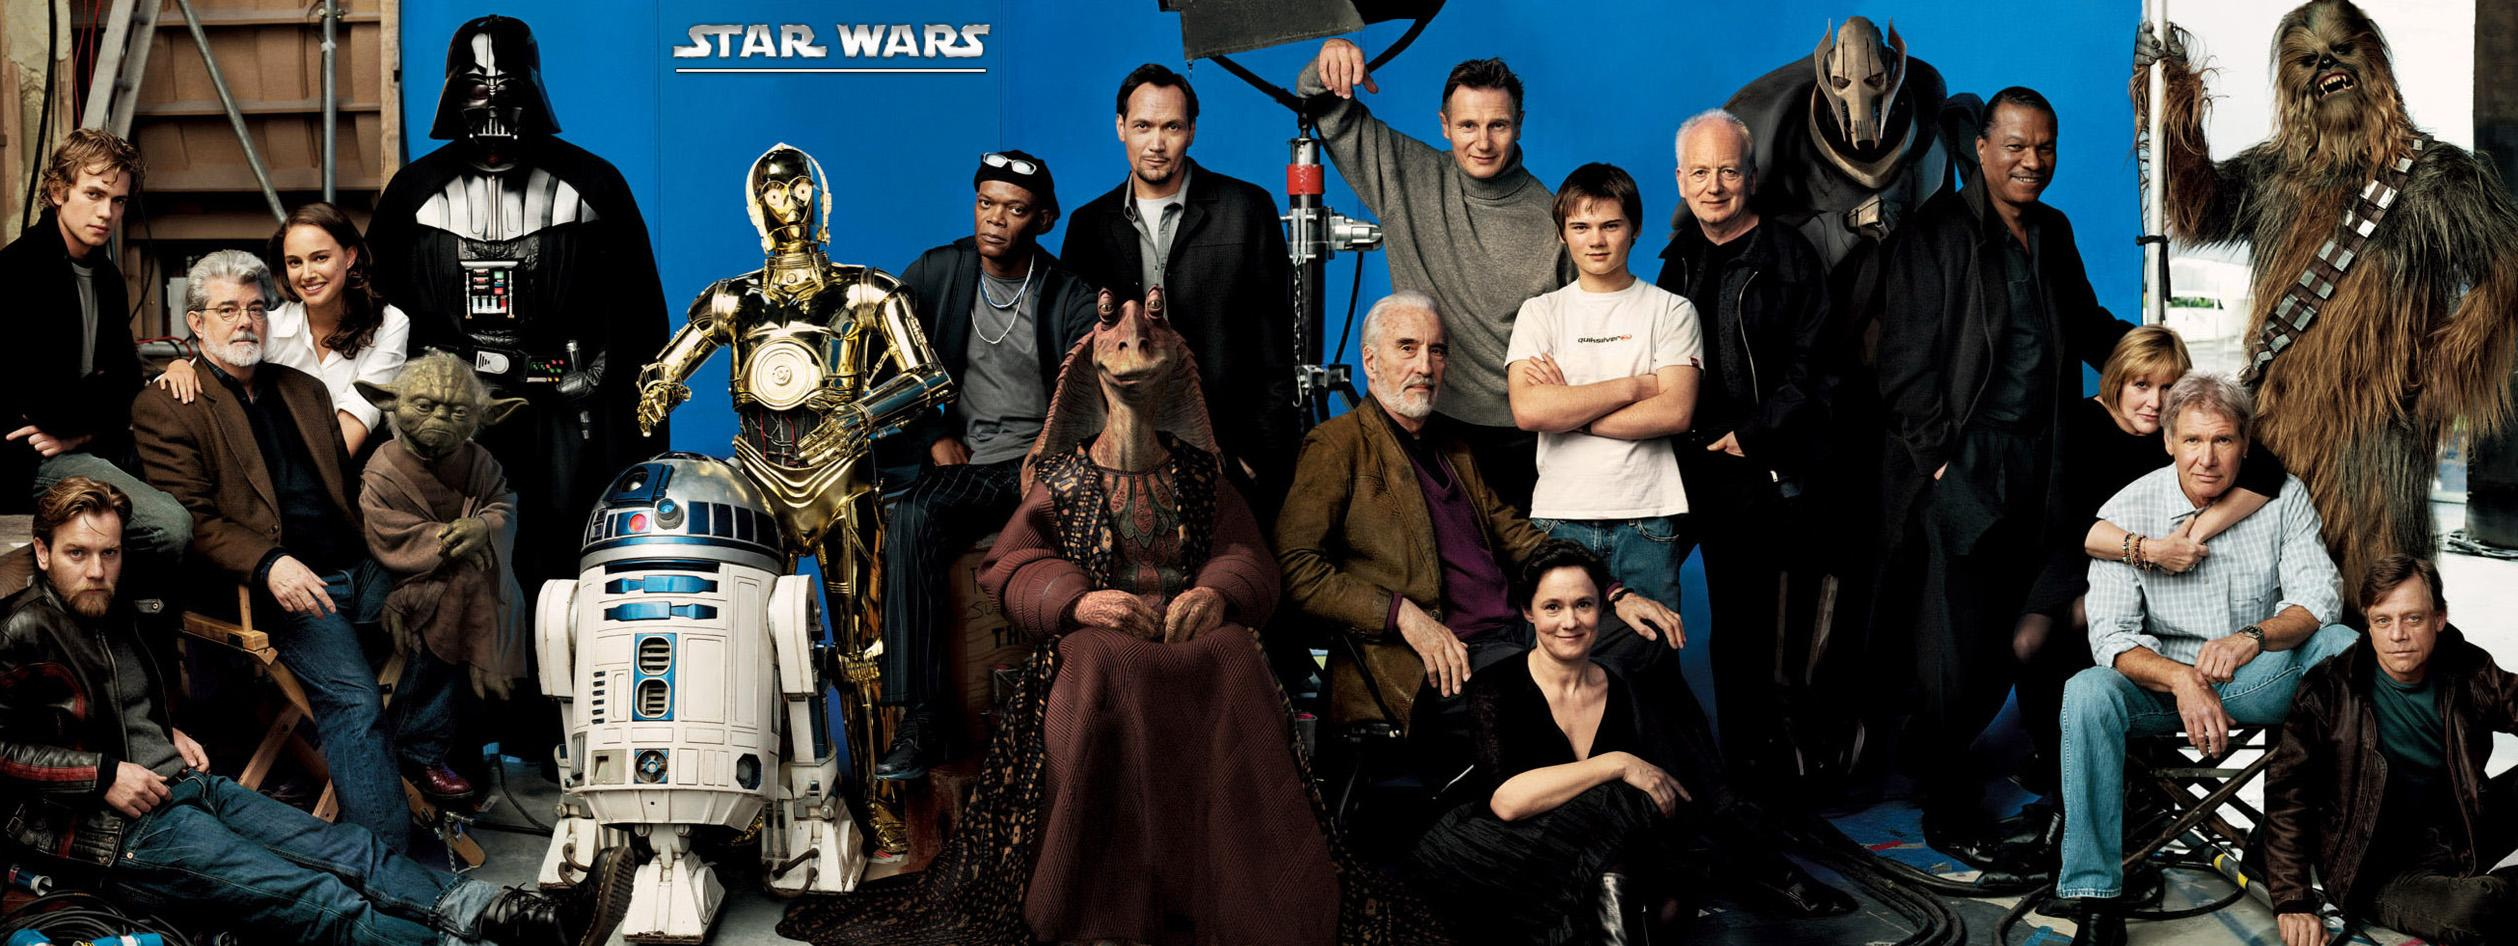 Star wars vanity fair star wars